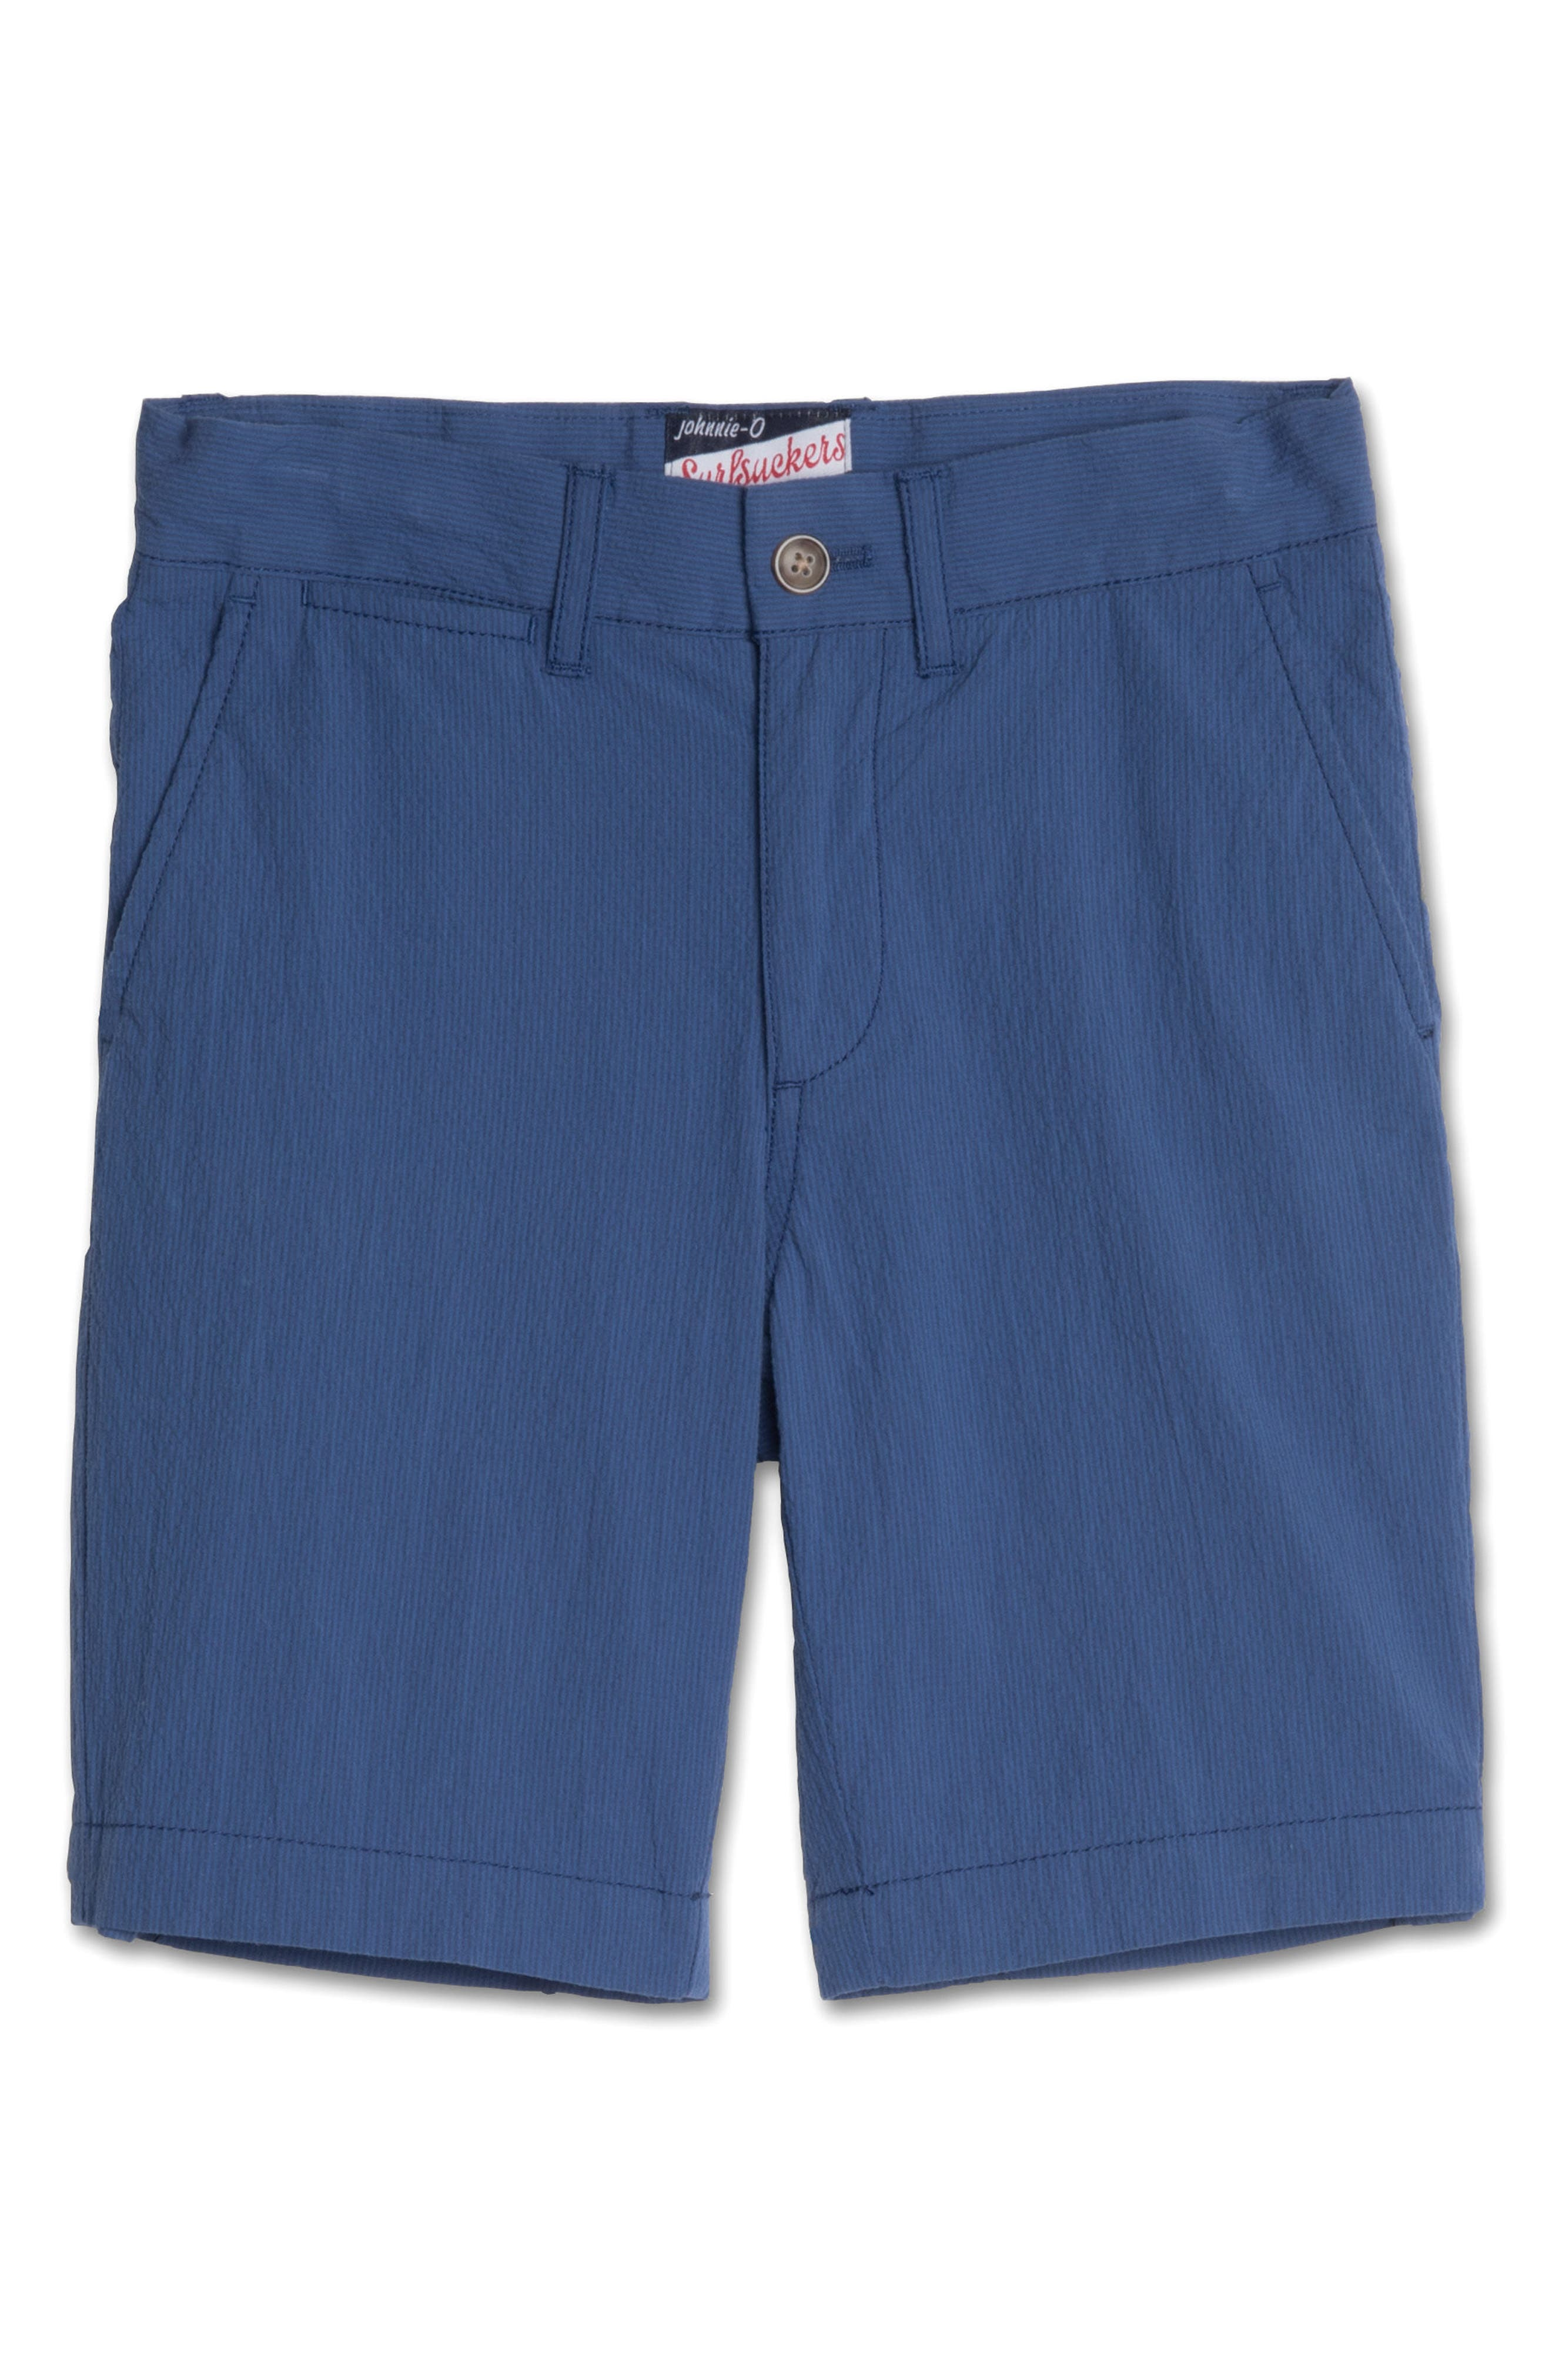 johnnie-o Bryson Seersucker Shorts (Big Boys)